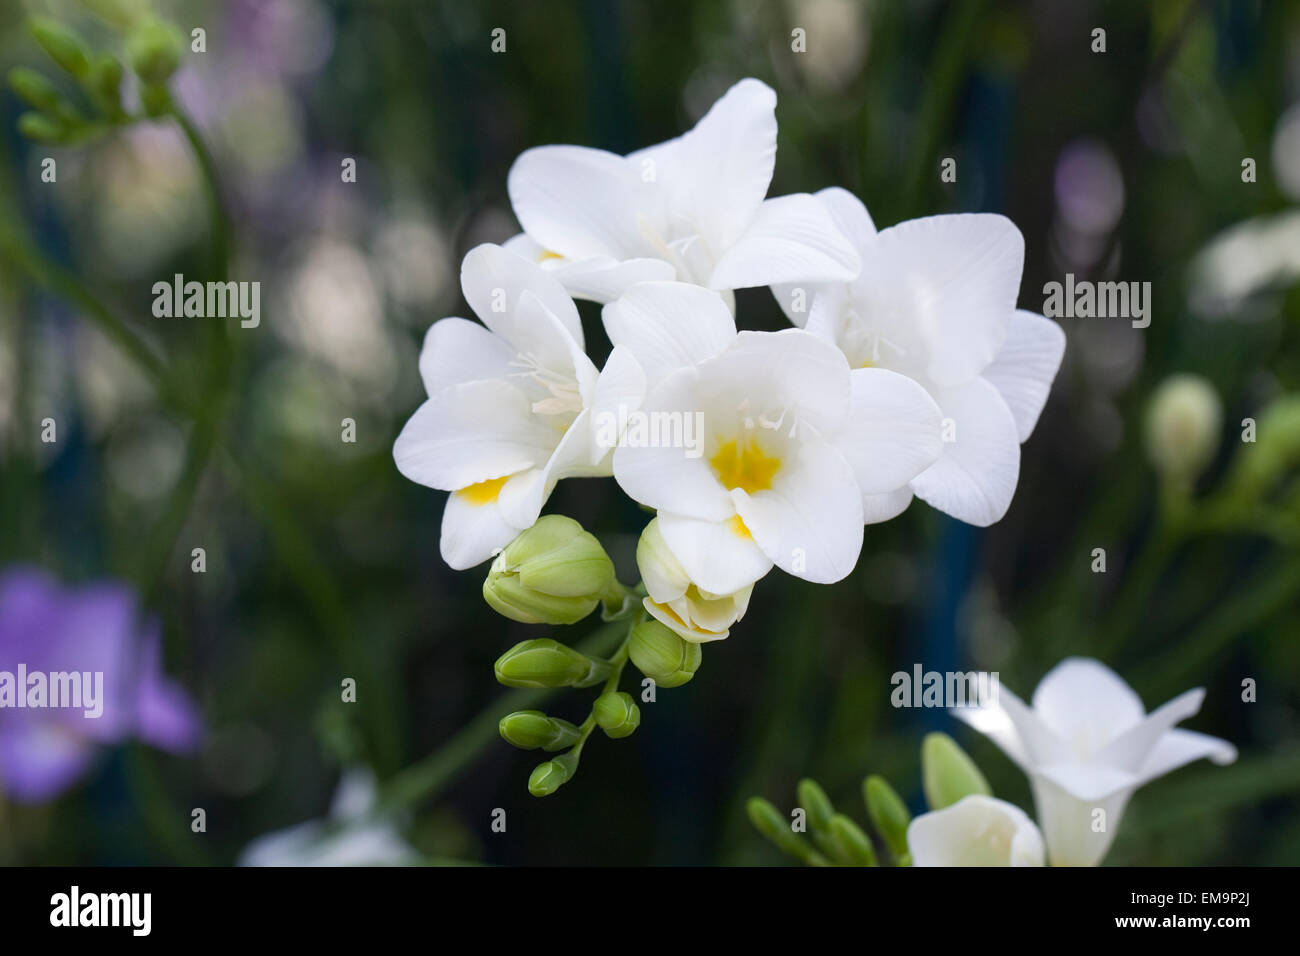 Freesia flower stock photos freesia flower stock images alamy white freesia flower growing in a protected environment stock image mightylinksfo